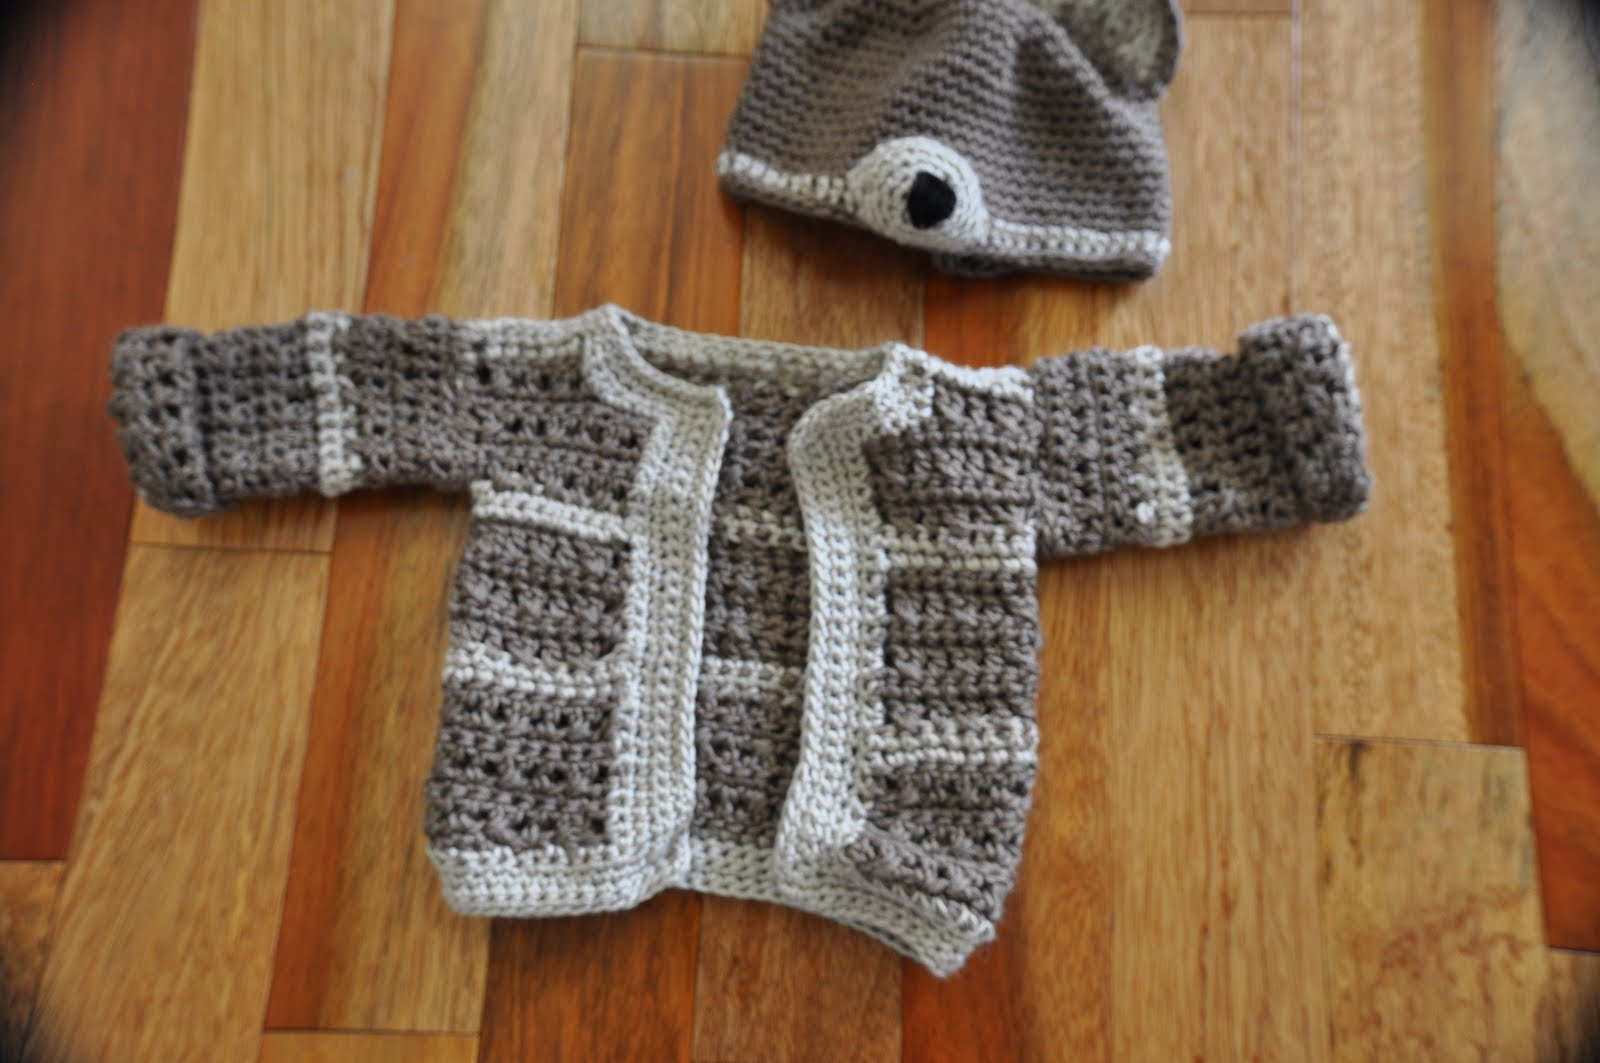 Crochet Newborn Baby Sweater Free Pattern : TODDLER CROCHET SWEATER PATTERN ? Easy Crochet Patterns